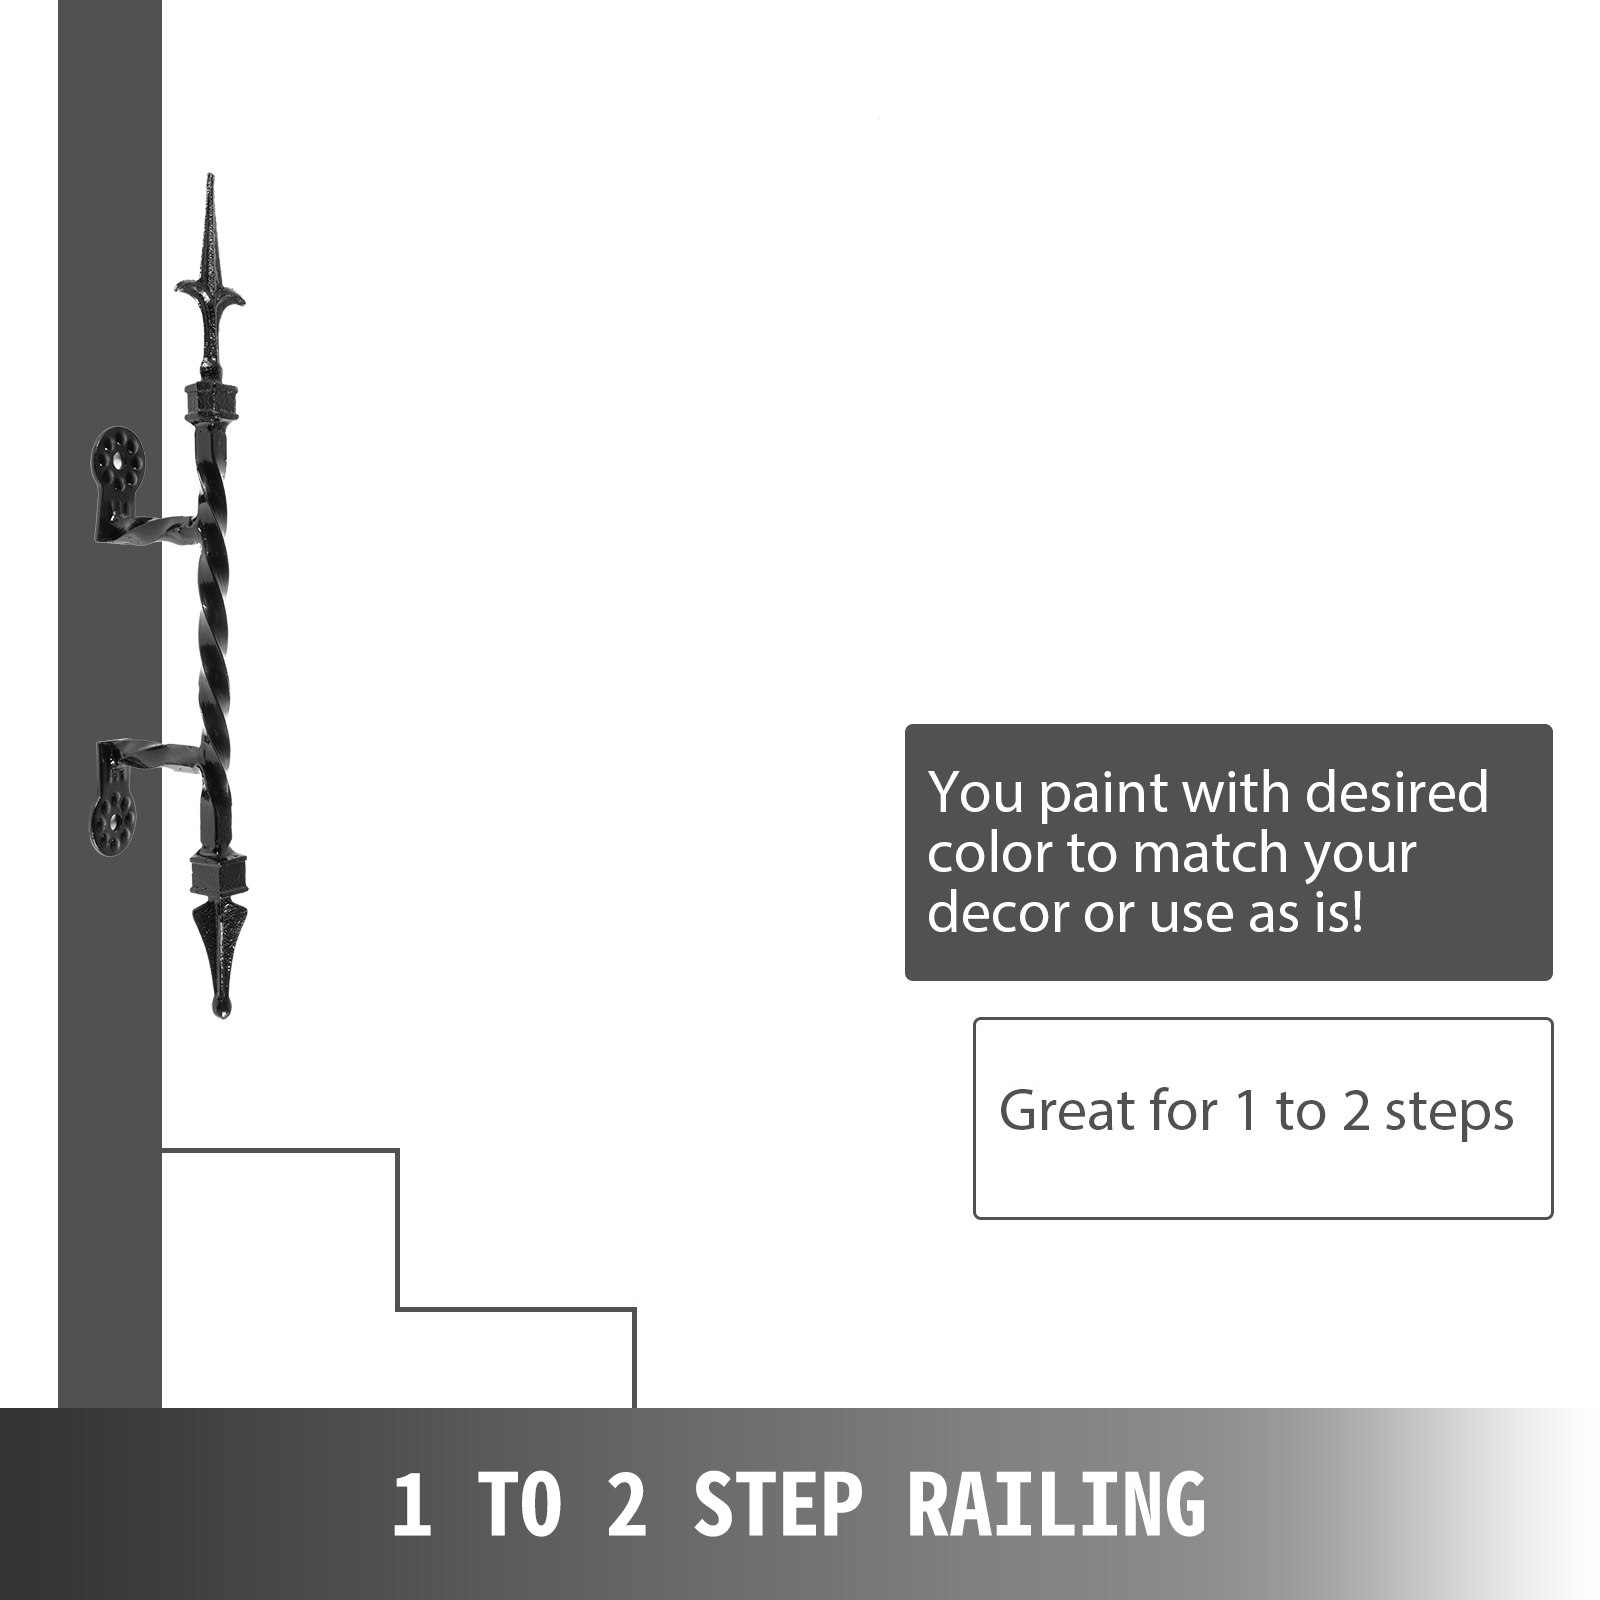 Handrails-for-Outdoor-Step-Wrought-Iron-Handrail-20-034-Length-Porch-Deck-Railing thumbnail 87